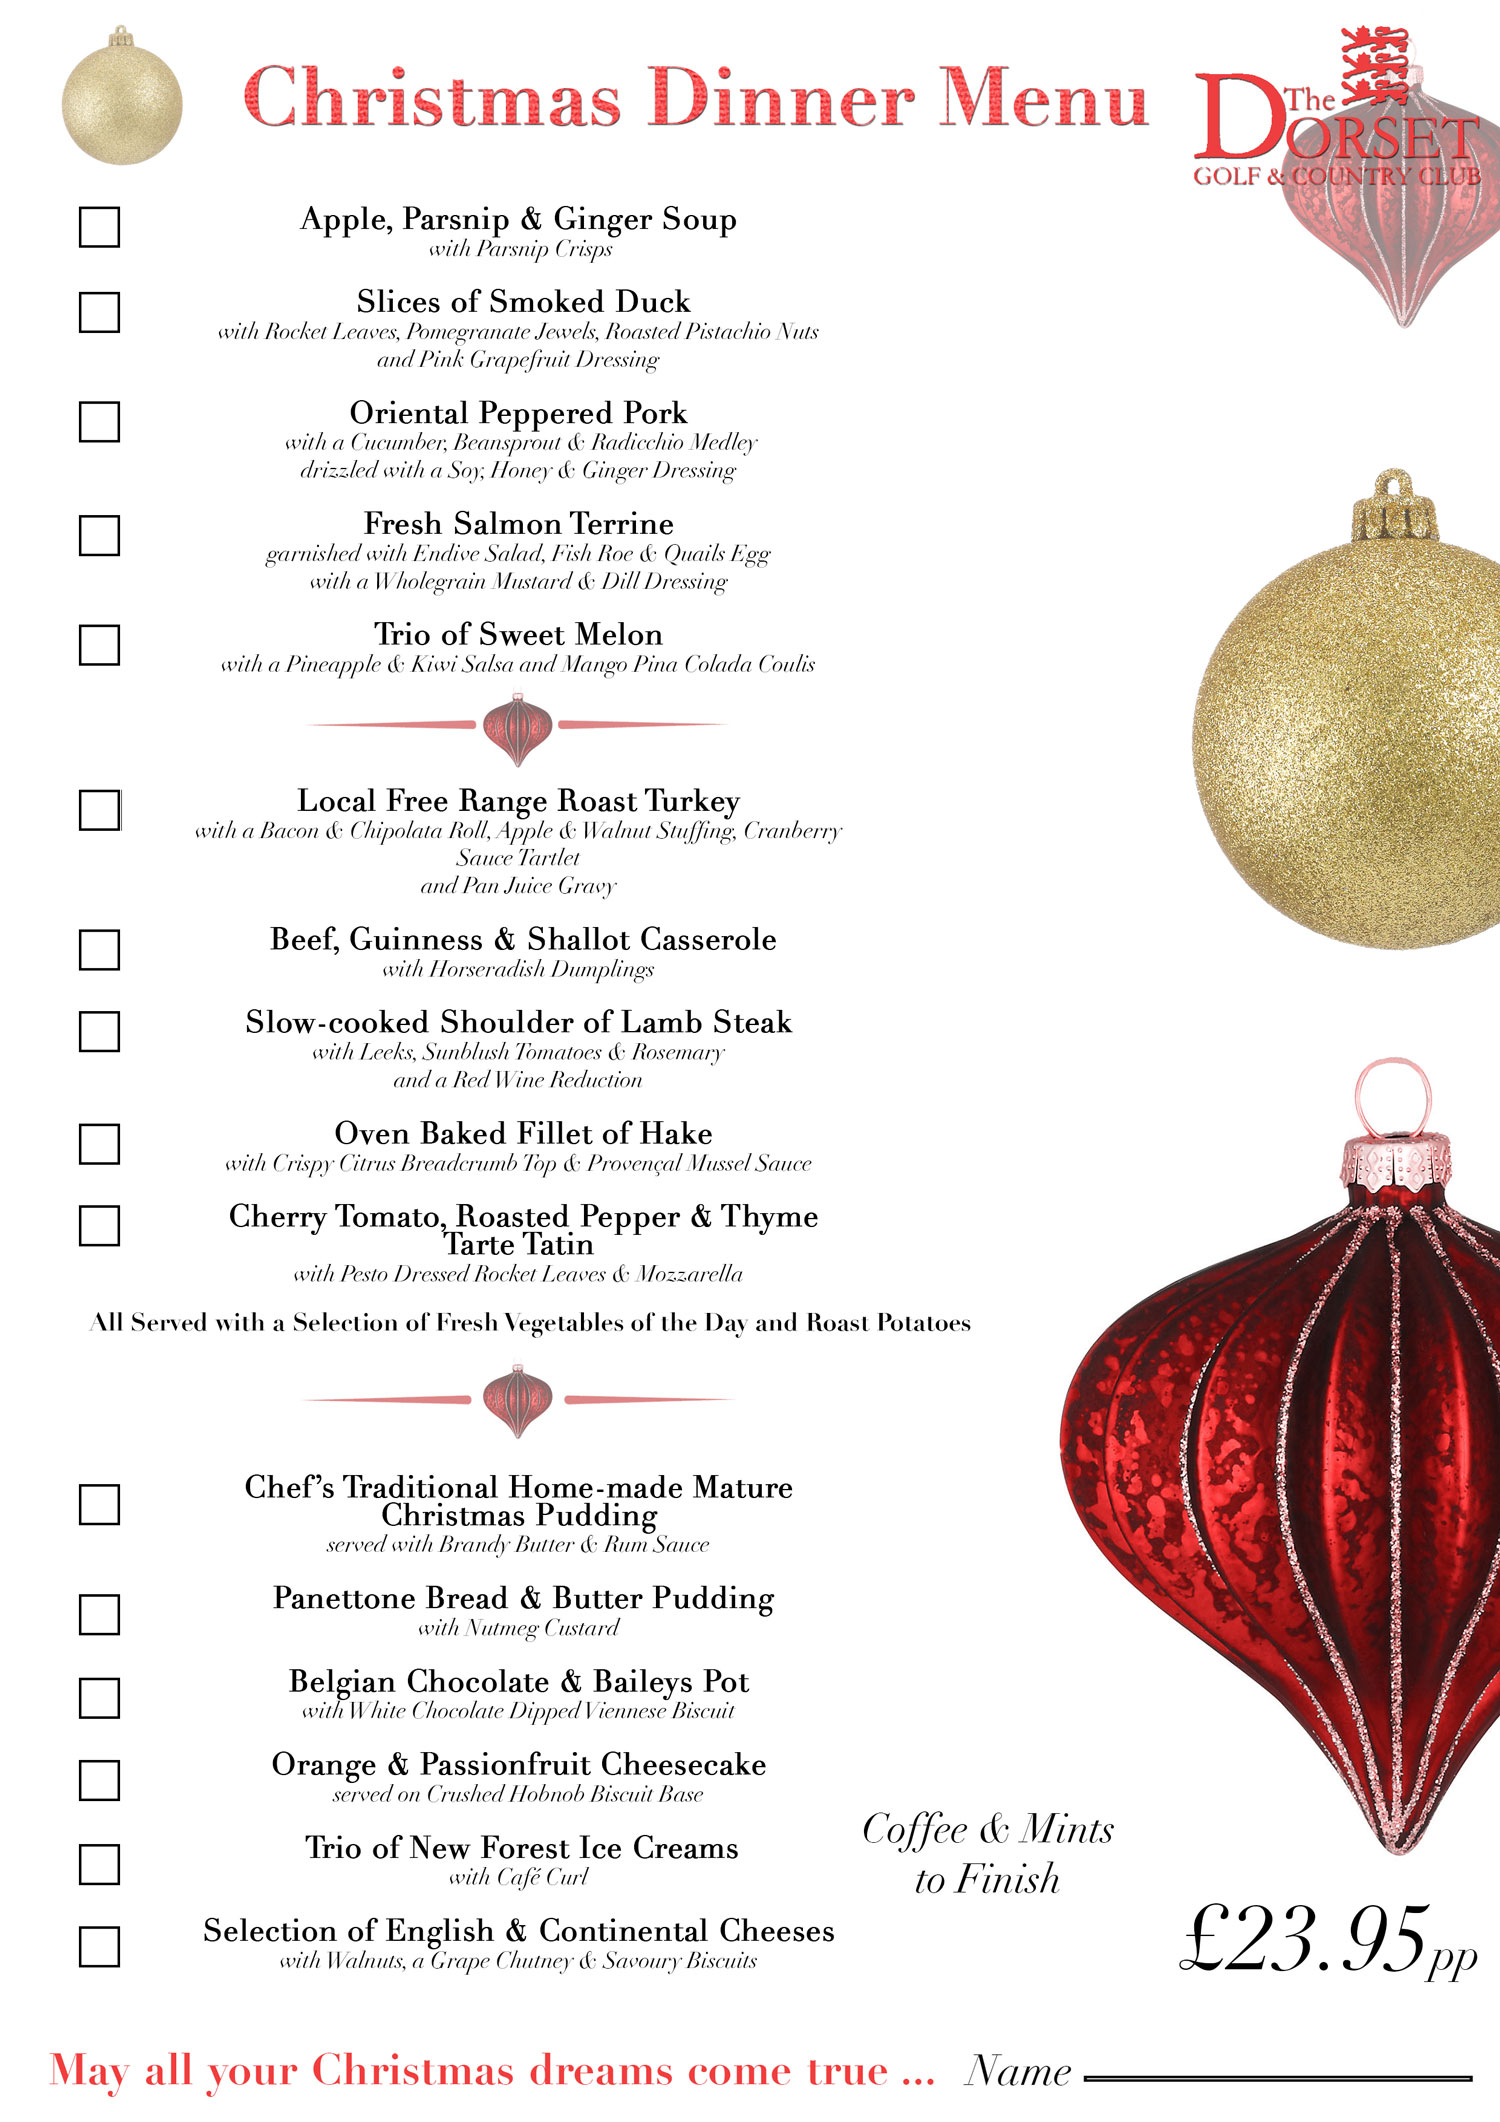 christmas dinner menus dublin